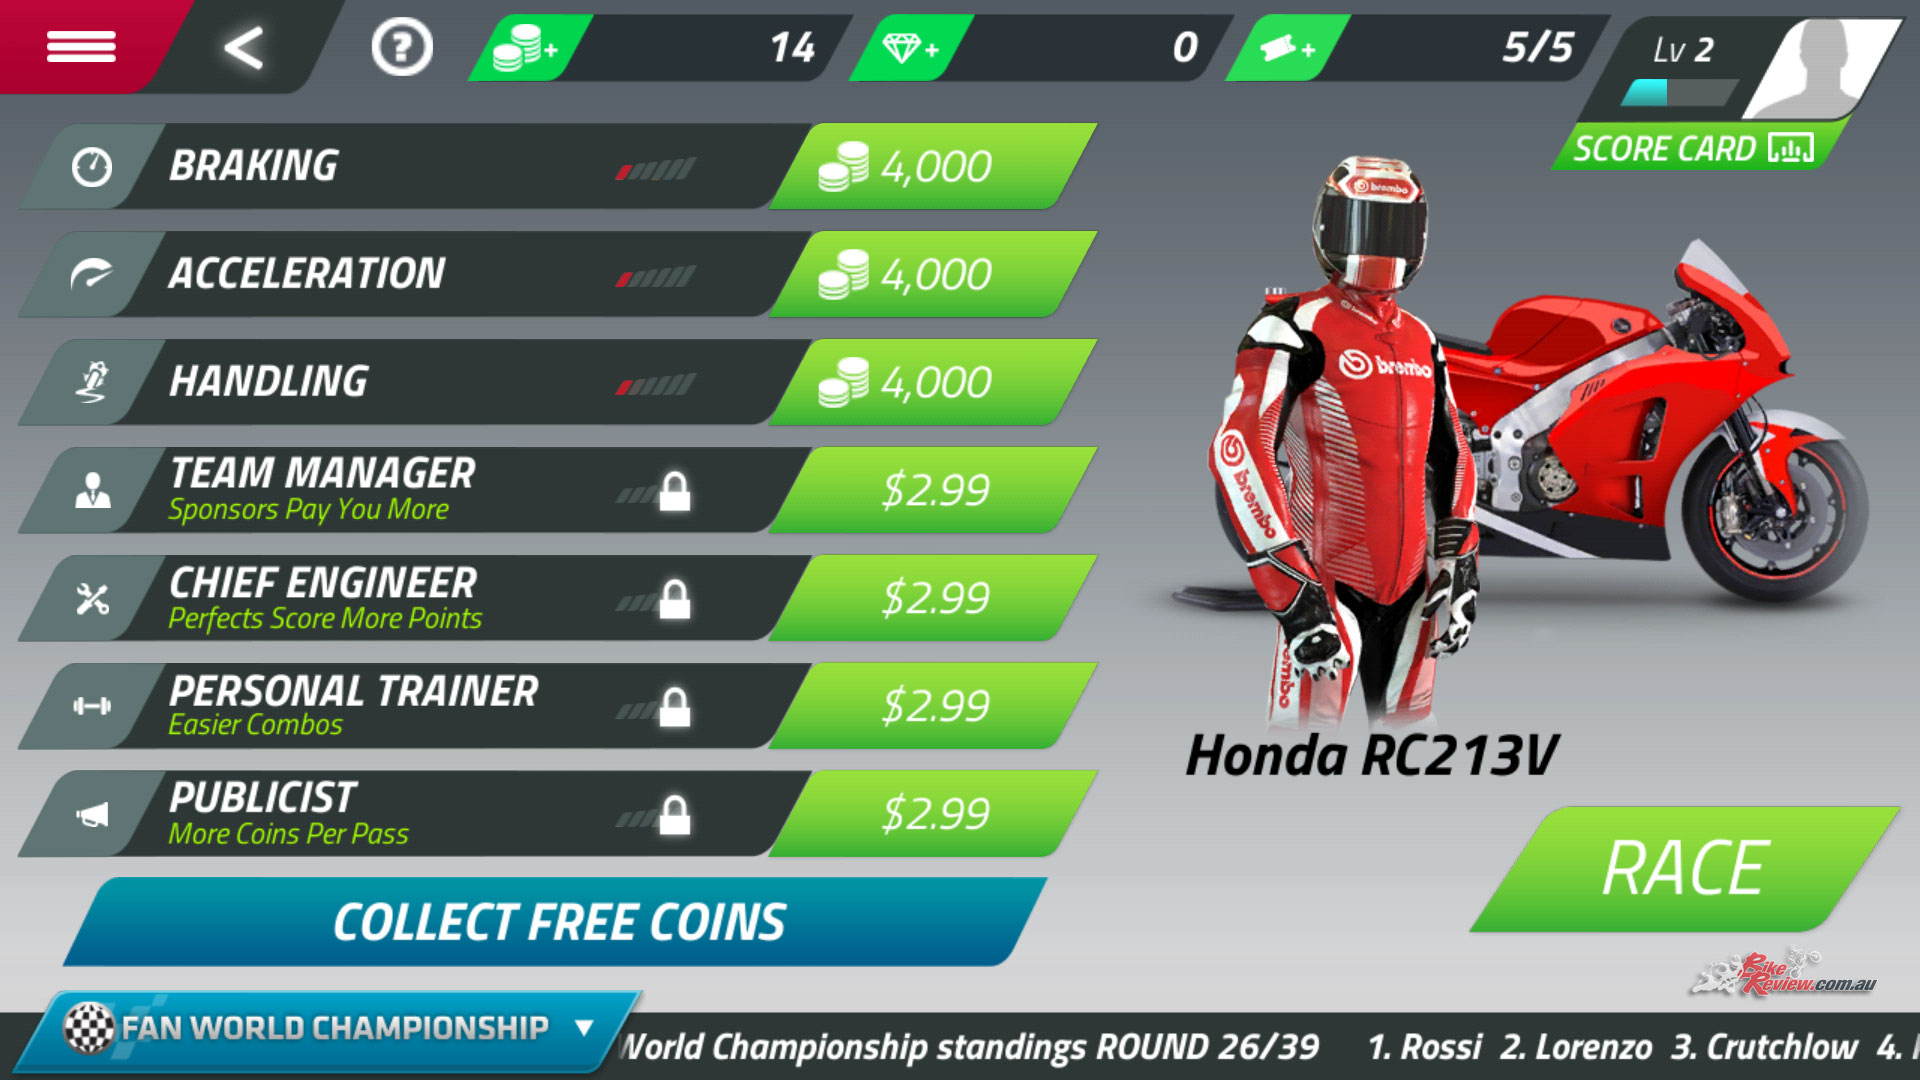 motogp championship quest tournament motogp 2017 info